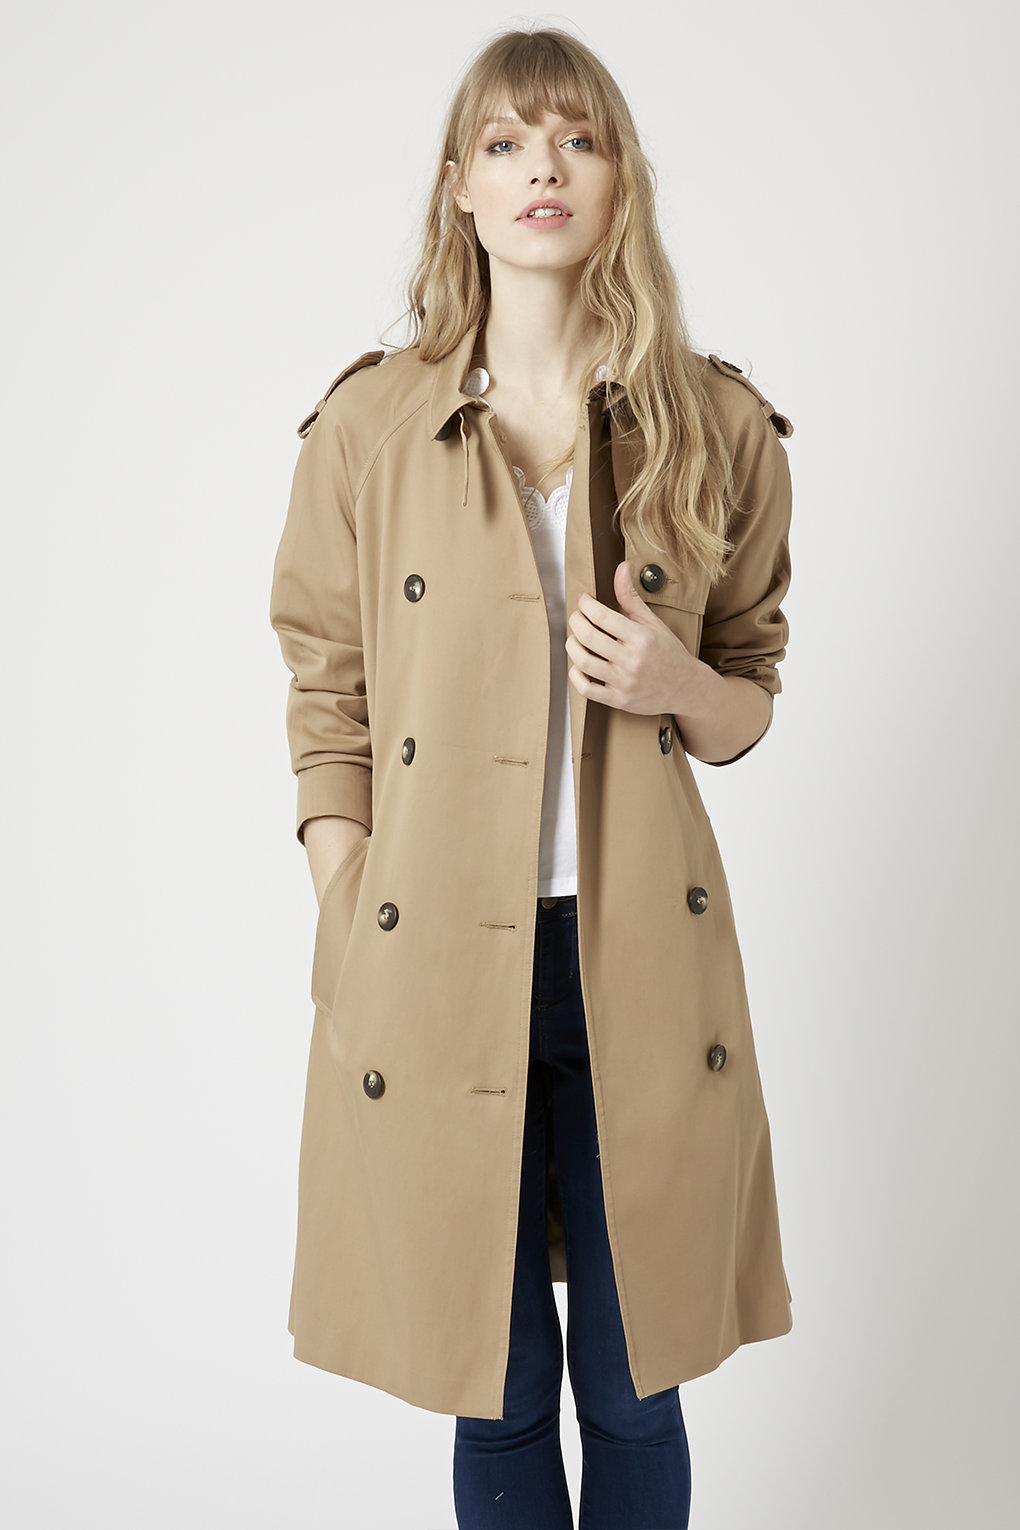 Trench coat women uk